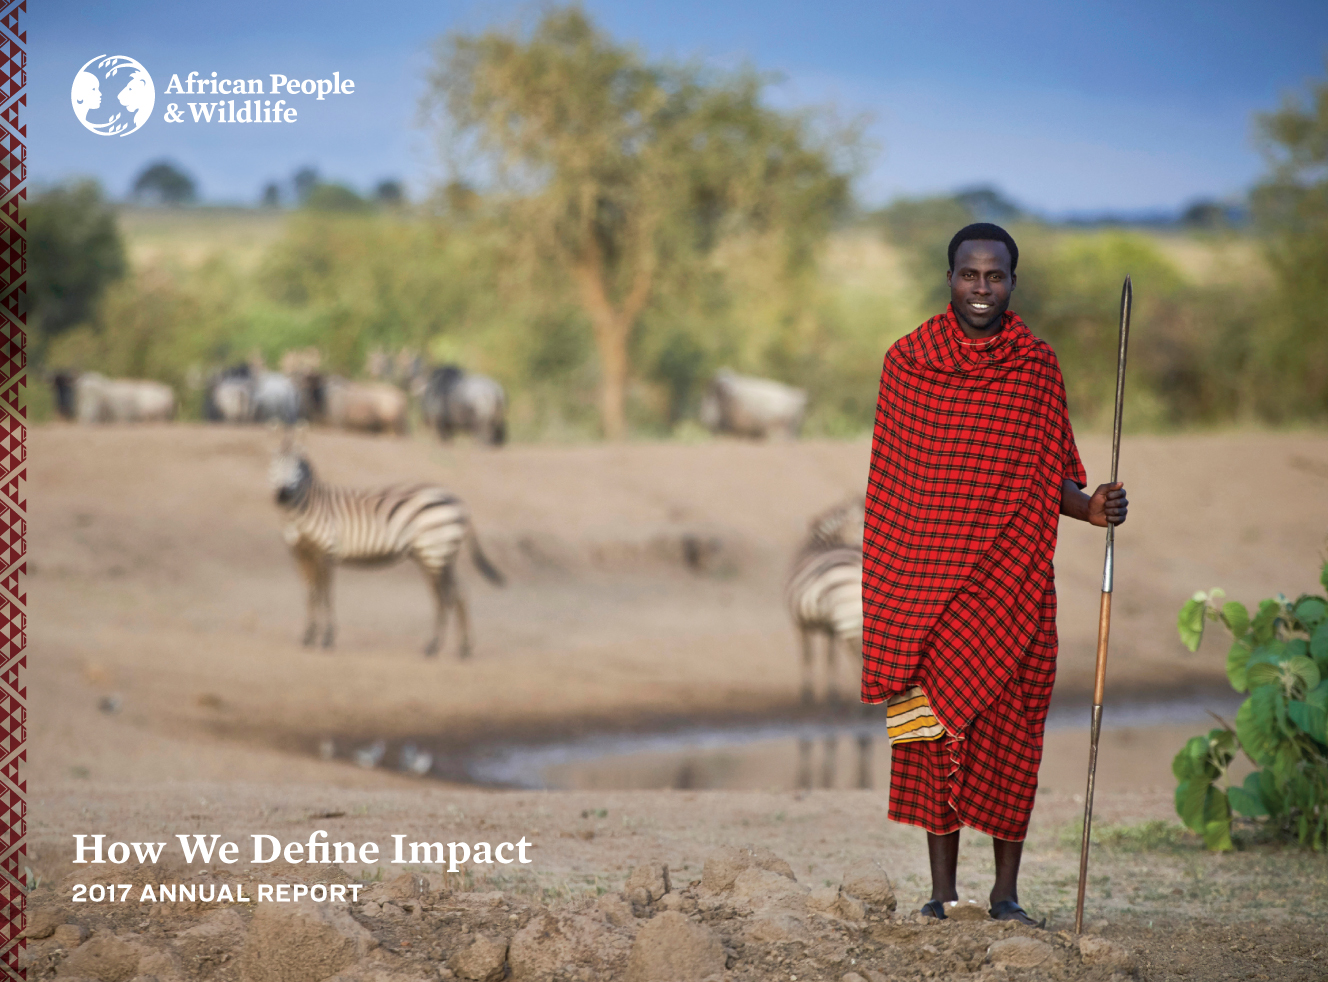 African People & Wildlife 2017 Annual Report cover